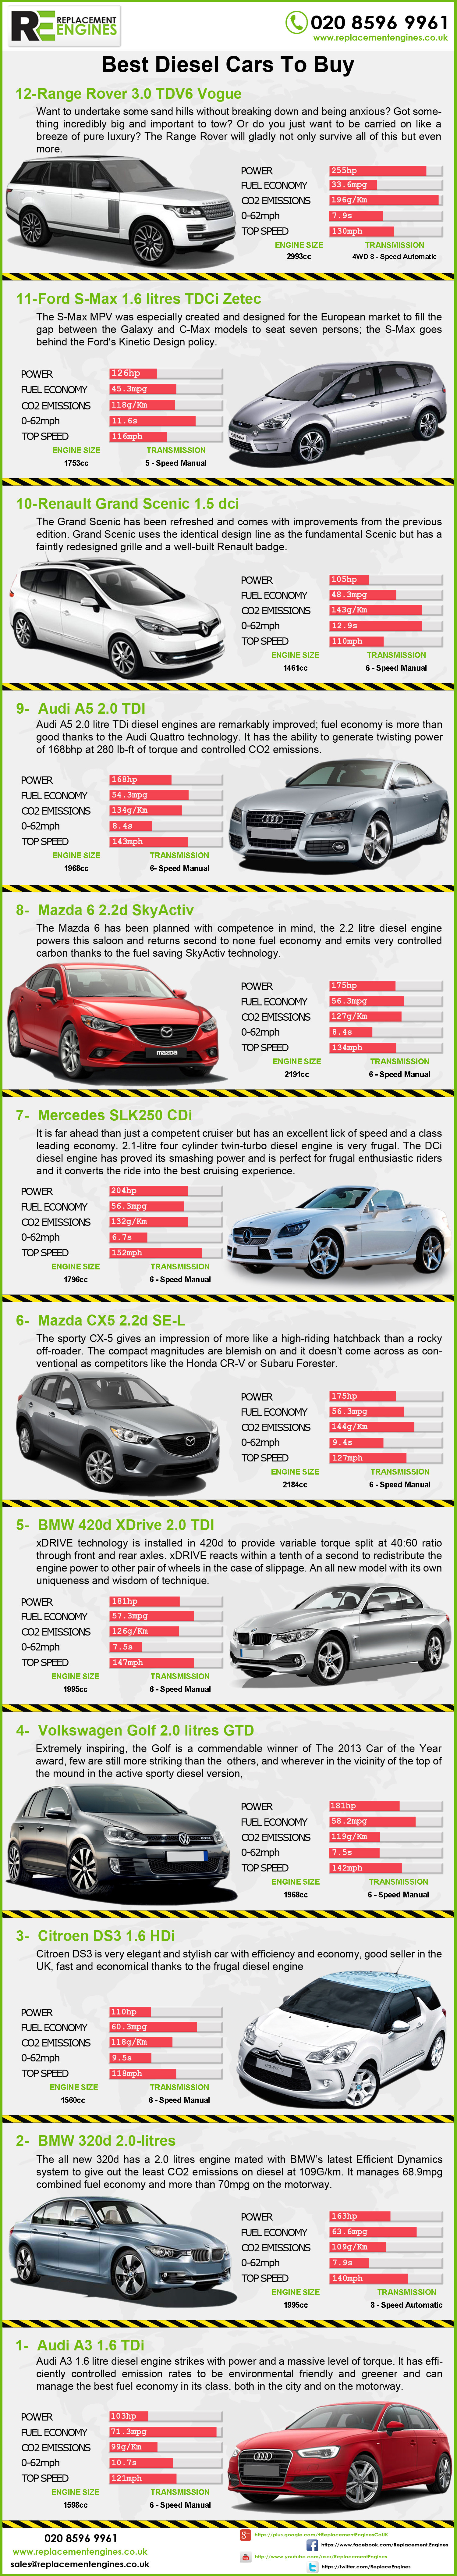 Top 12 Diesel Engine Cars Infographic